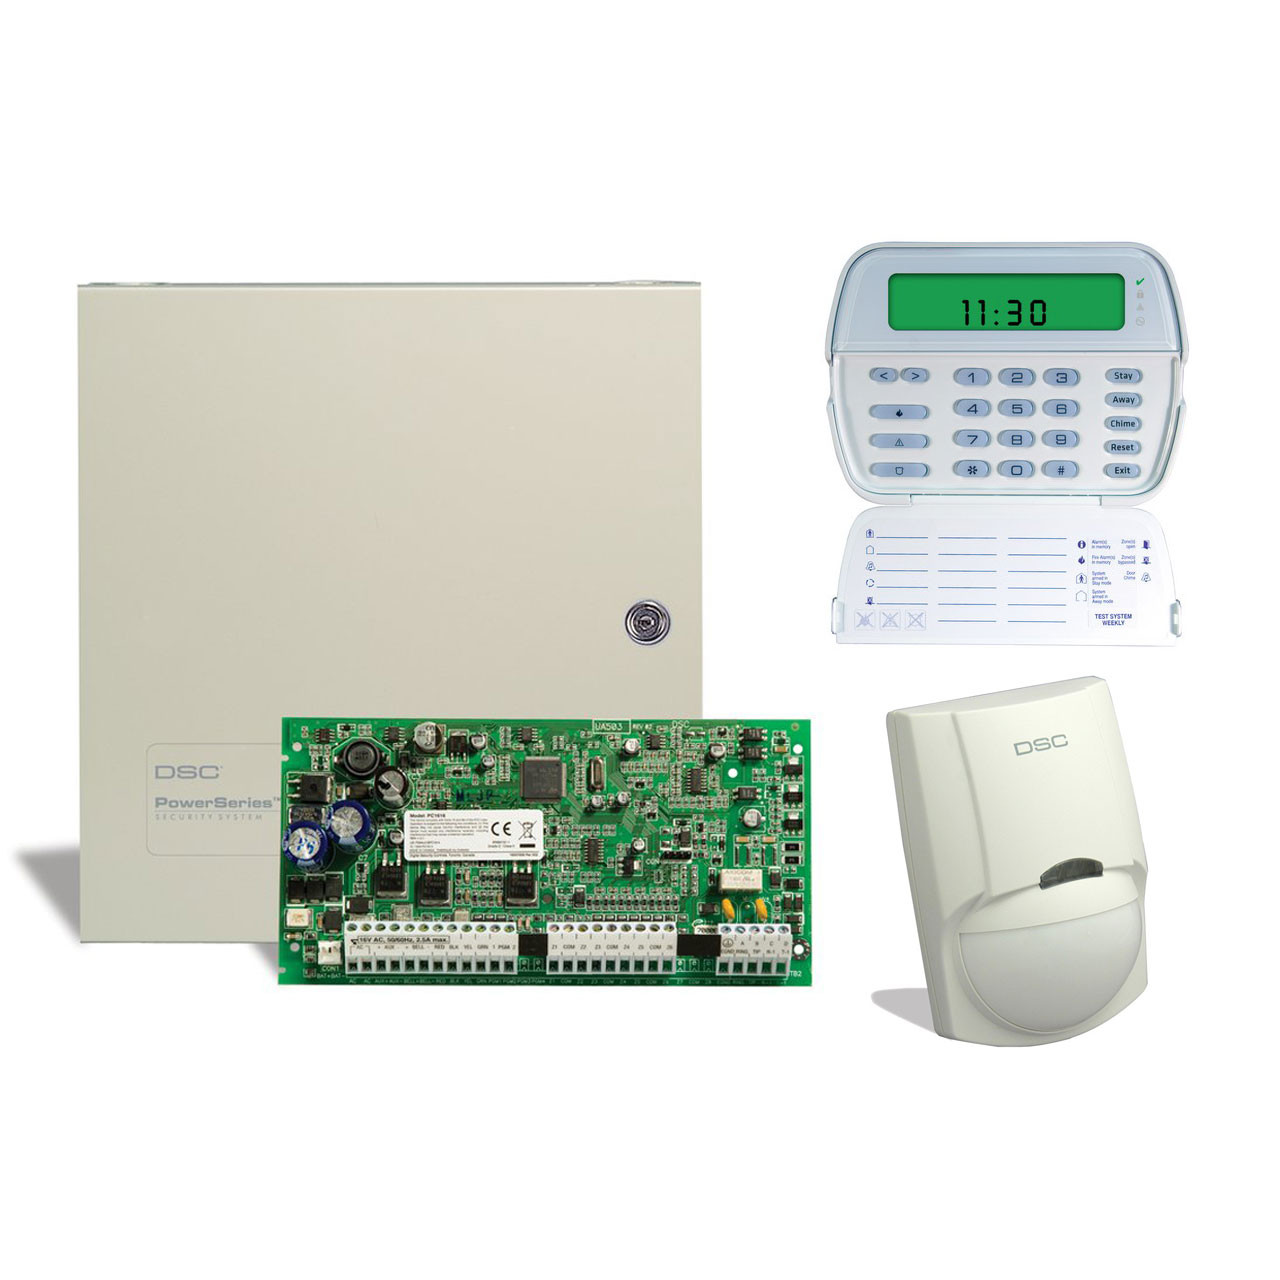 Dsc Alarm Pk5500 User Manual Basic Instruction Security System Wiring Diagram 1550 6 Zone Kit With Keypad And Motion Detector Tremtech Electrical Systems Inc 433 1500